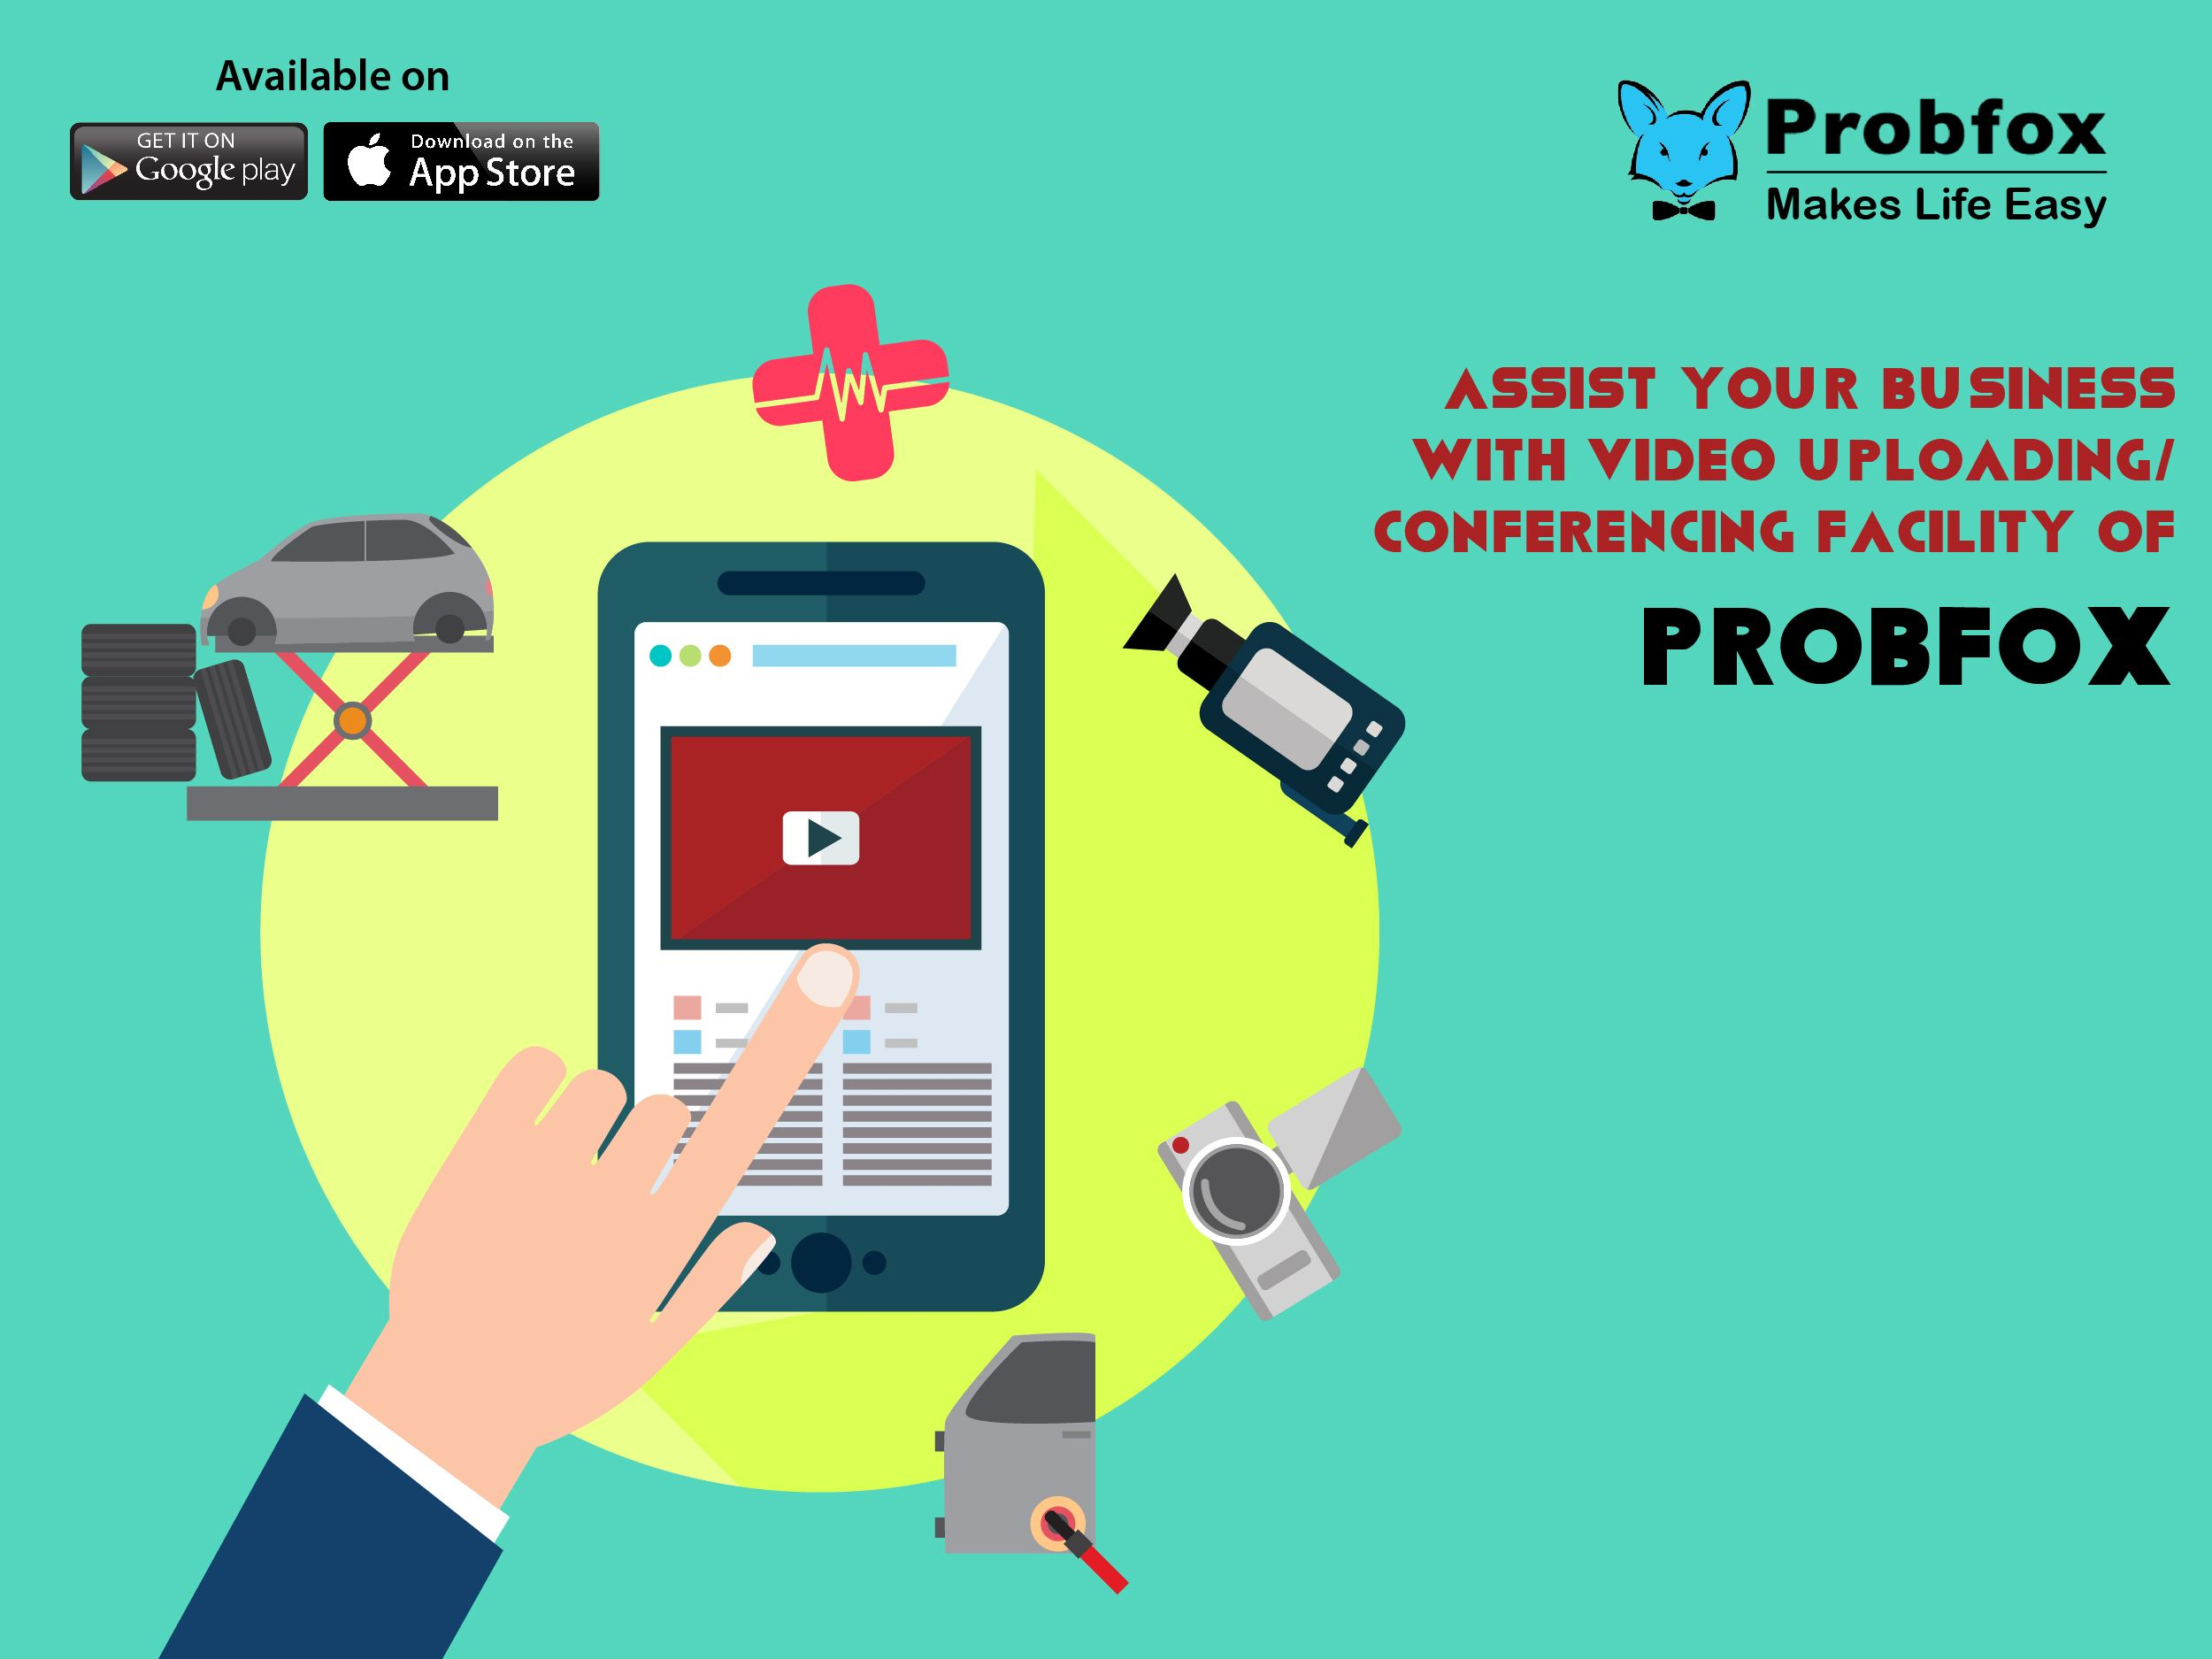 Video Uploading/Conferencing facility of Probfox is an ideal feature ...